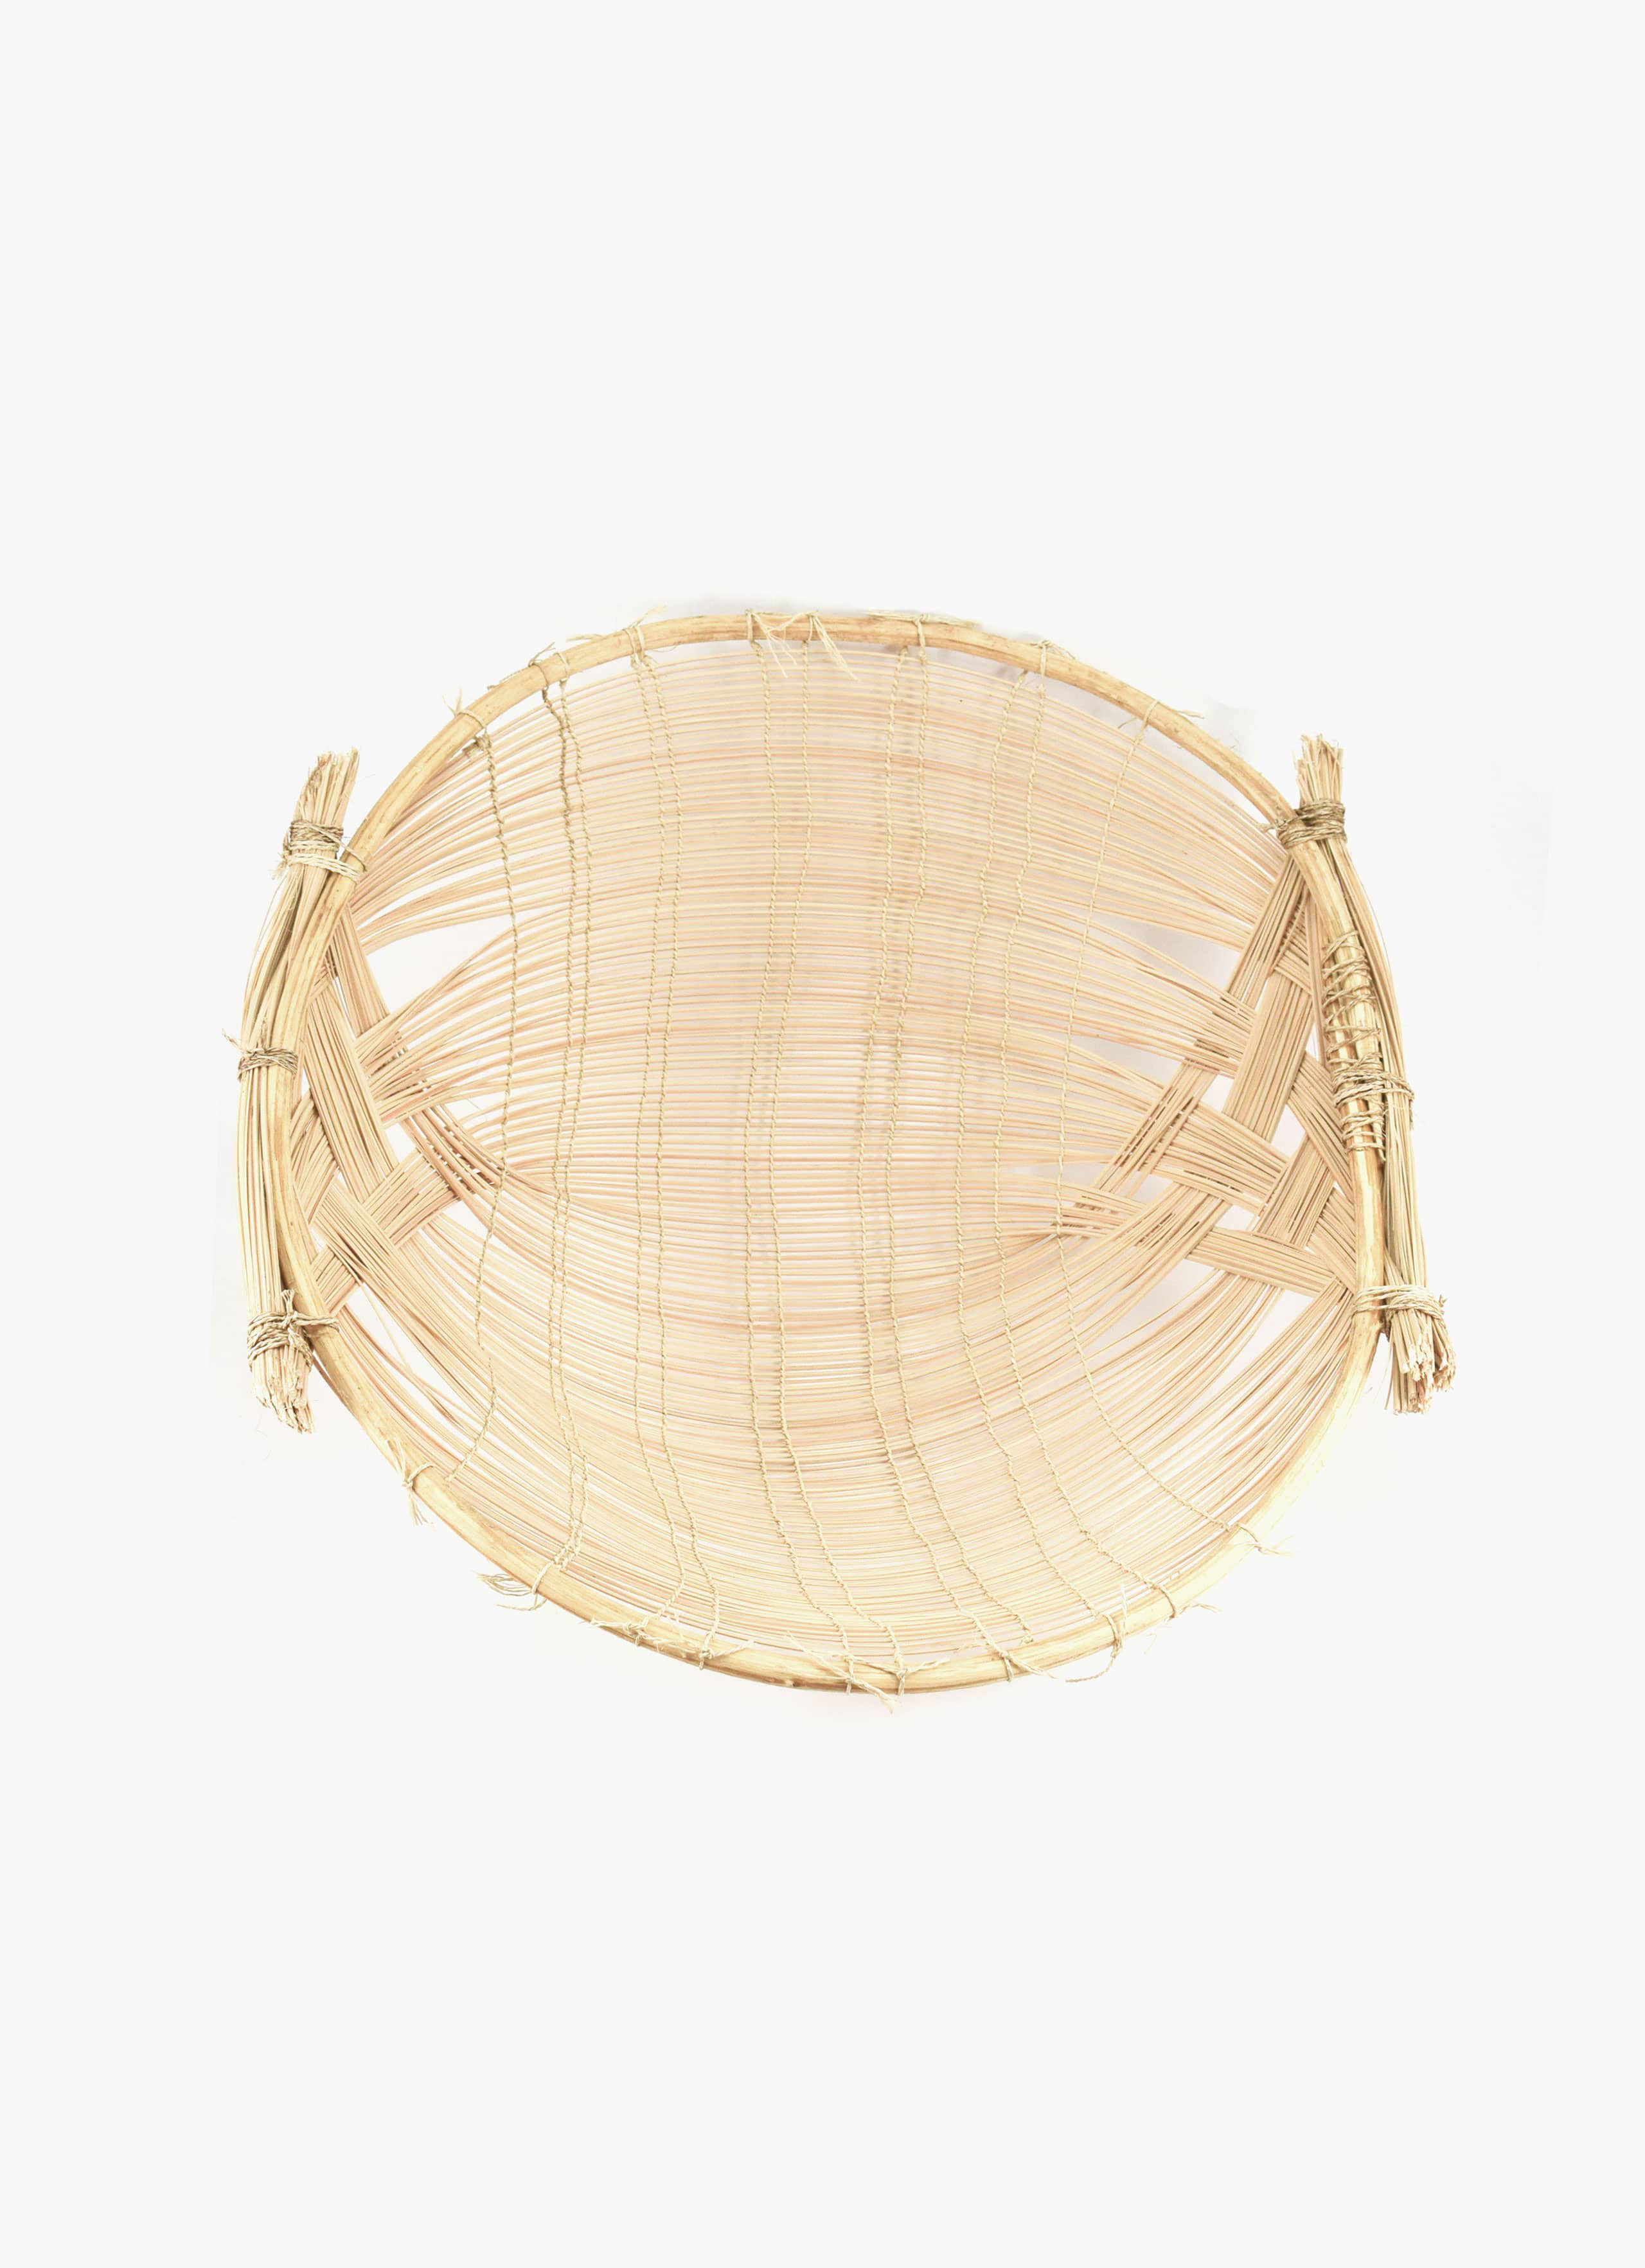 Incausa - Mehinako - Traditional Fishing Basket